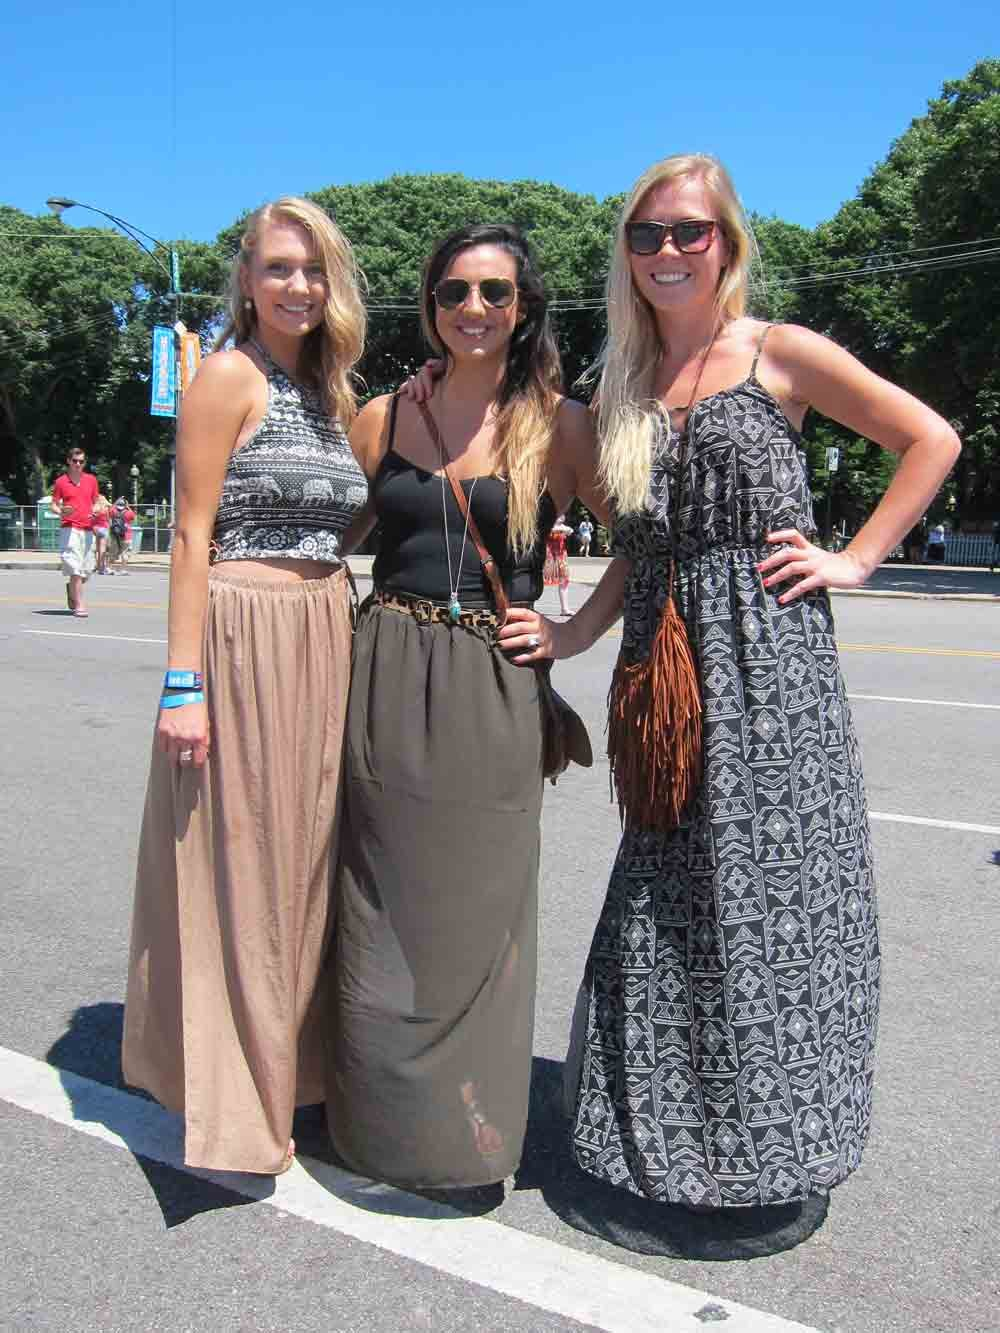 Three's company: Nicolette, Marley, and Megan all went for long, billowing maxis as opposed to the more fest-friendly short shorts, and we thought it was a breath of fresh air. We particularly love Nicolette's fitted Urban Outfitters crop top and Zara skirt.